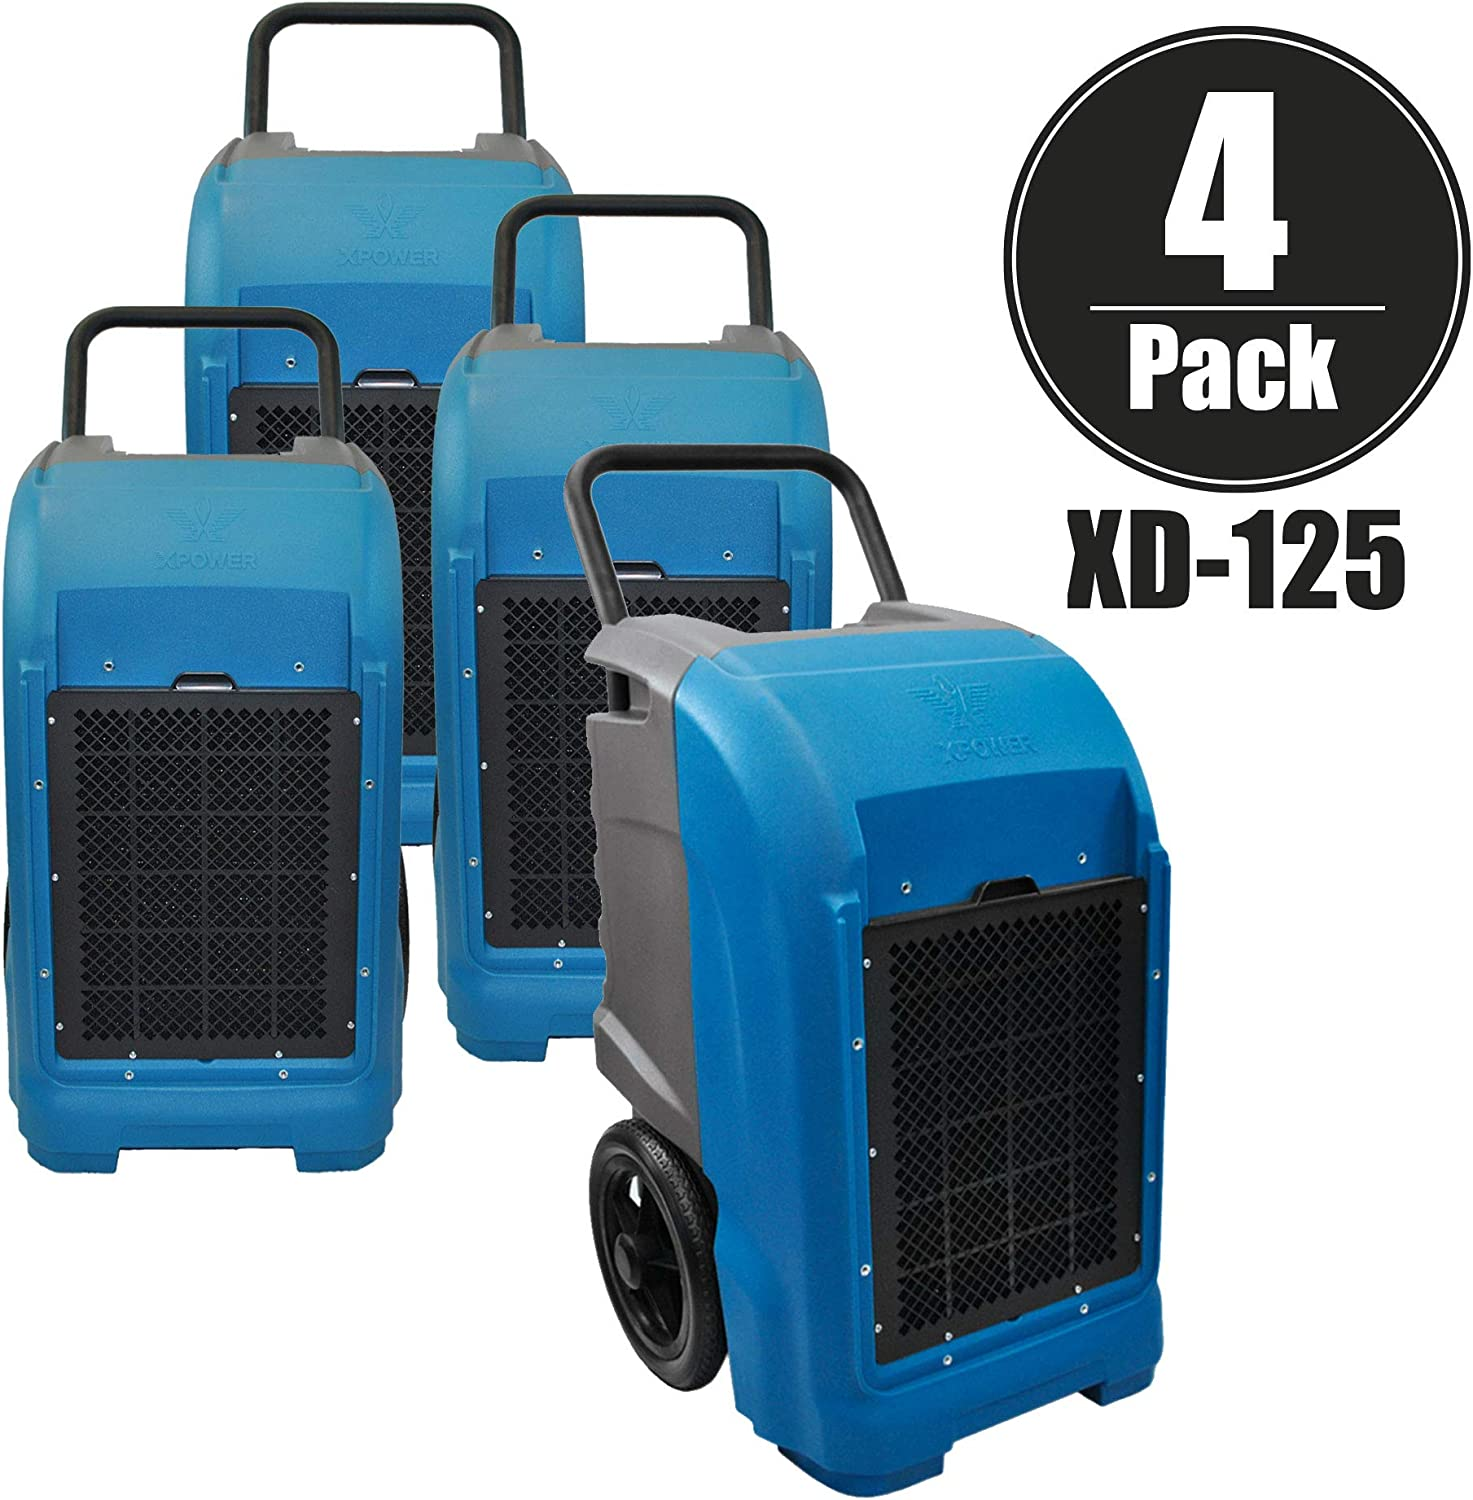 XPOWER XD-125 Industrial Commercial Dehumidifier to Dry basements, Large Rooms, Work Sites- Flood Damage Treatment, Moisture, and Prevent Mold and Mildew- 125-Pints 15-Gallons a Day- Blue 4 Pack